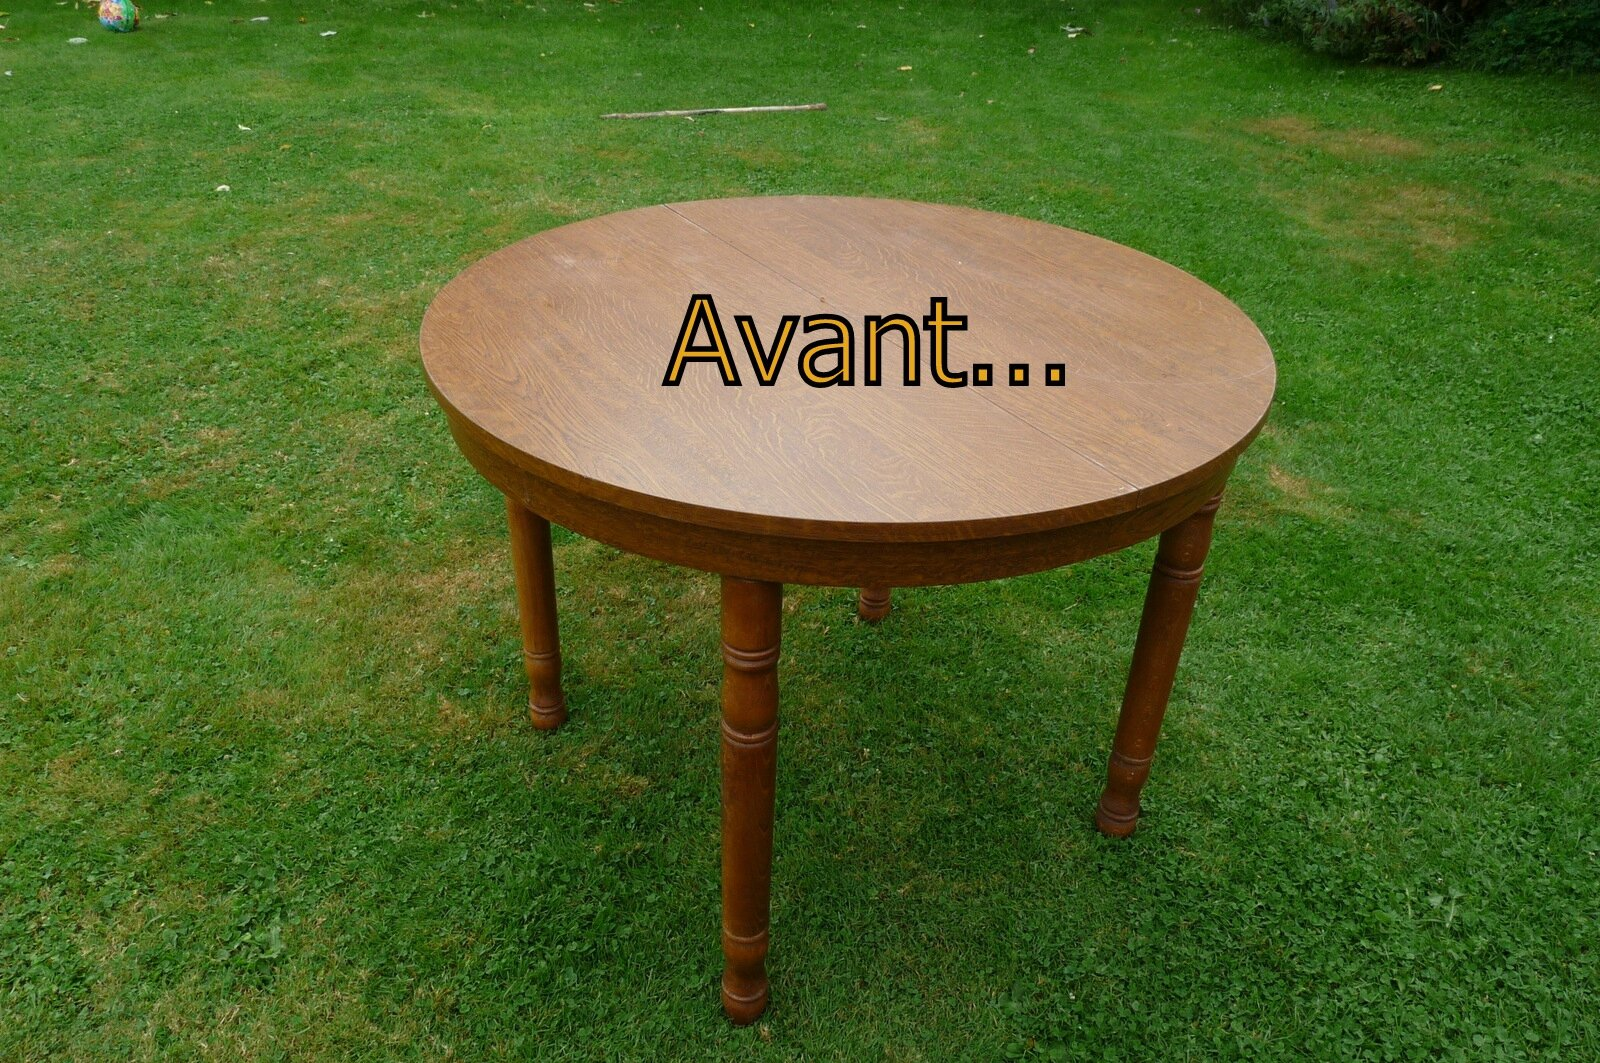 Customiser une vieille table basse en bois - Customiser une table basse en bois ...